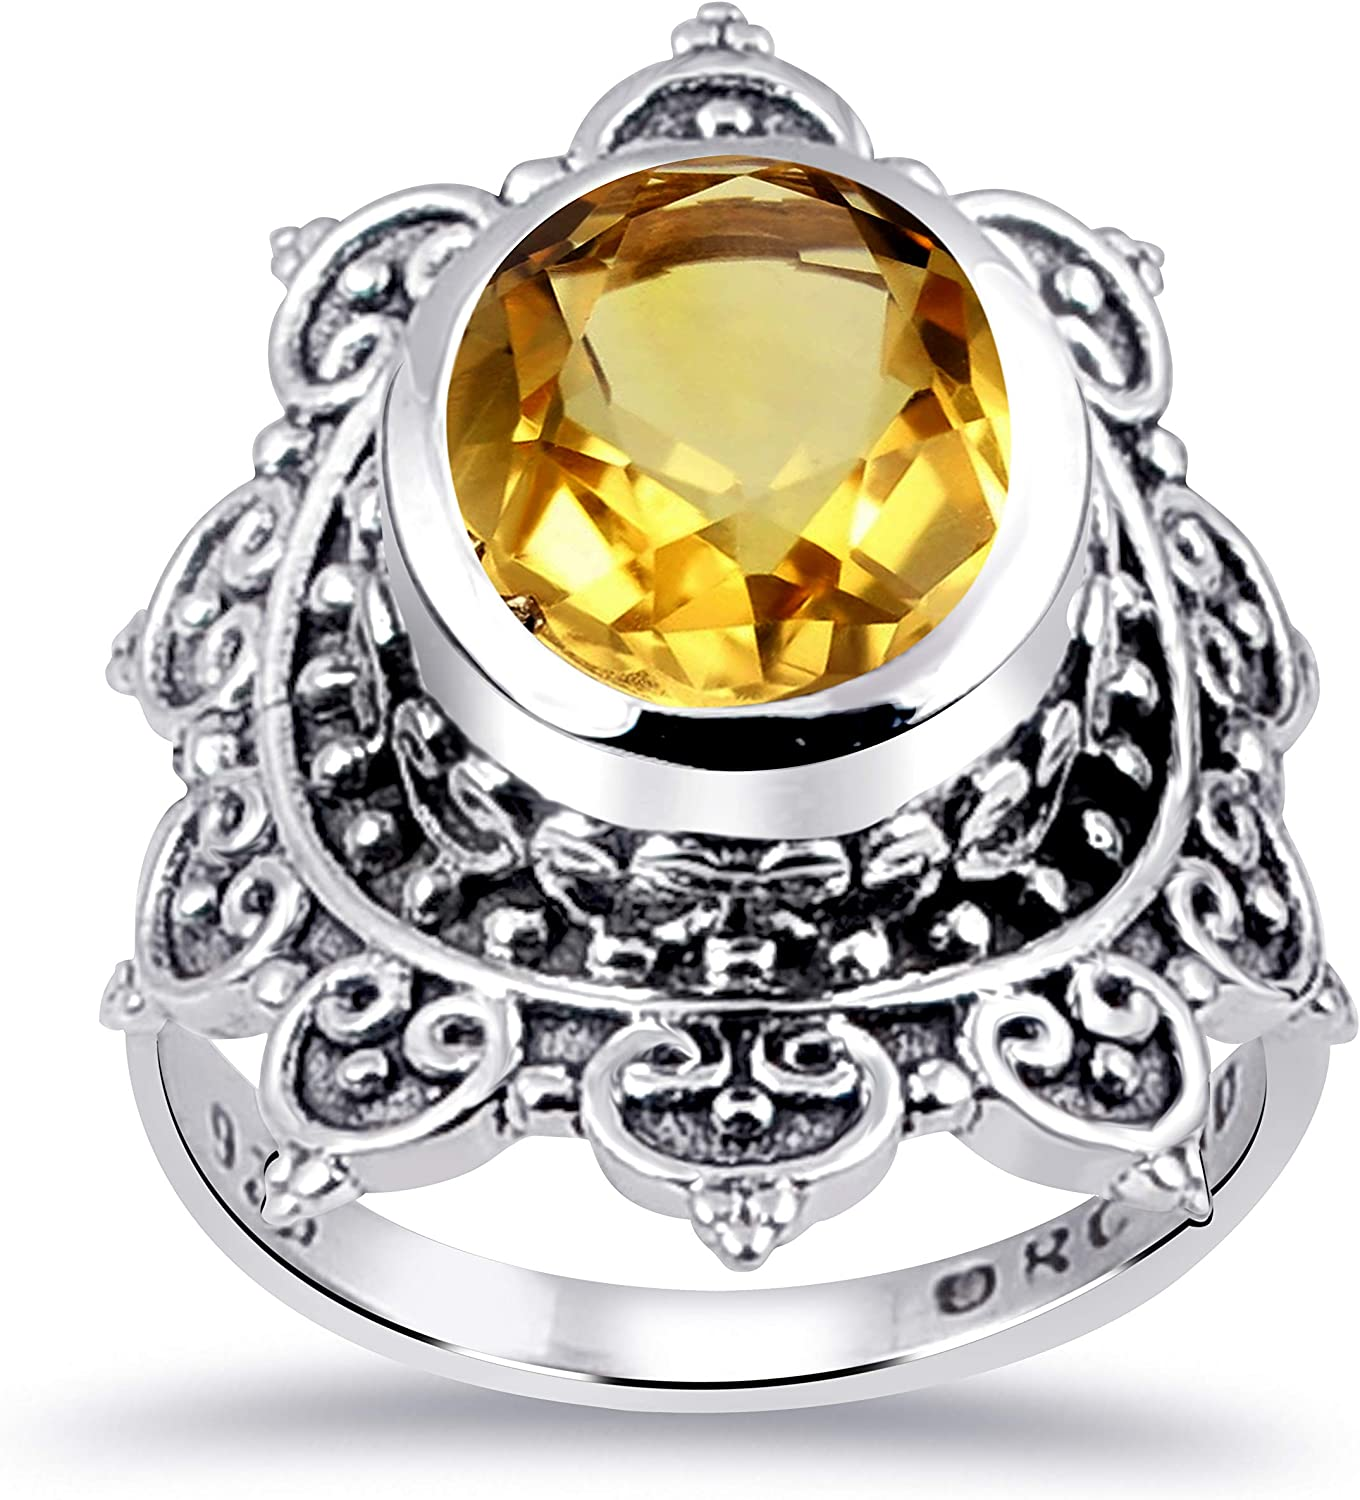 Orchid 超激得SALE Jewelry Sterling Silver Carving Ring 高級 For Multiple Women